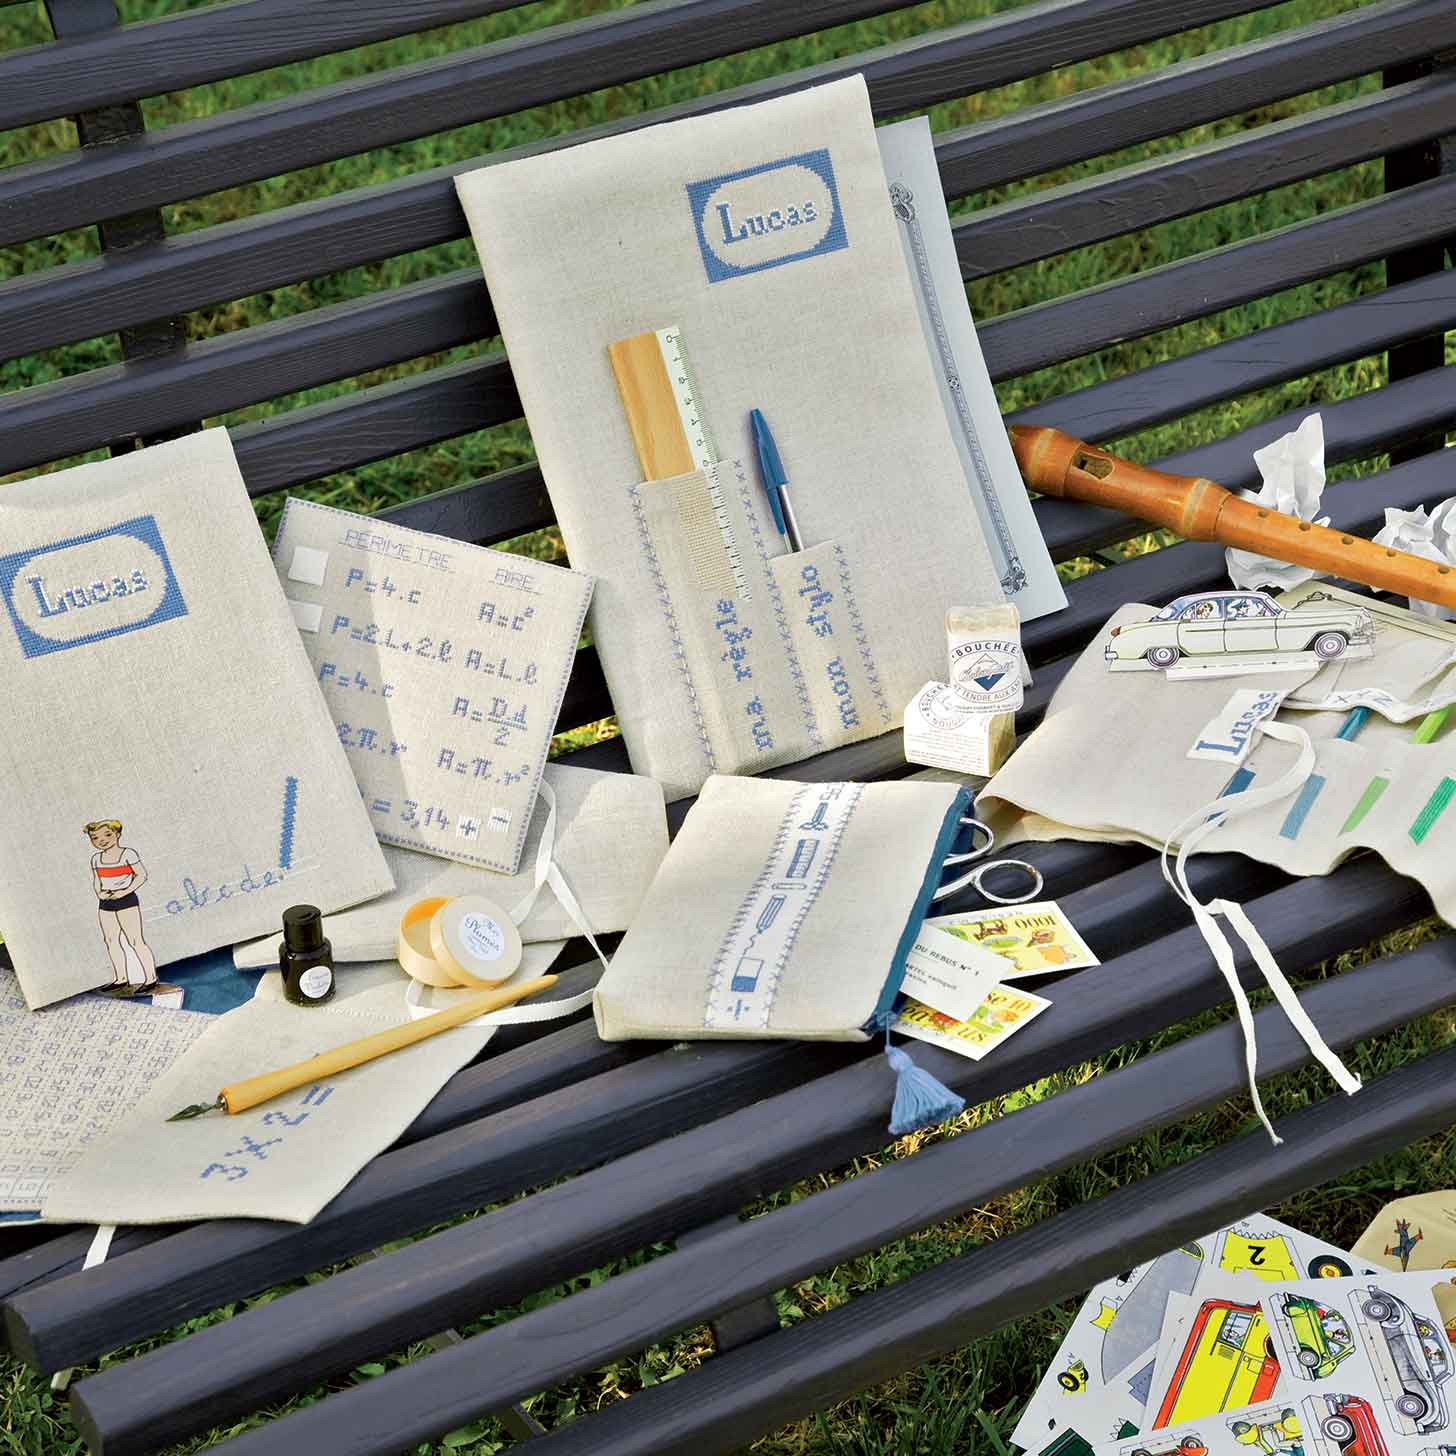 personnaliser ses fournitures scolaires broderie